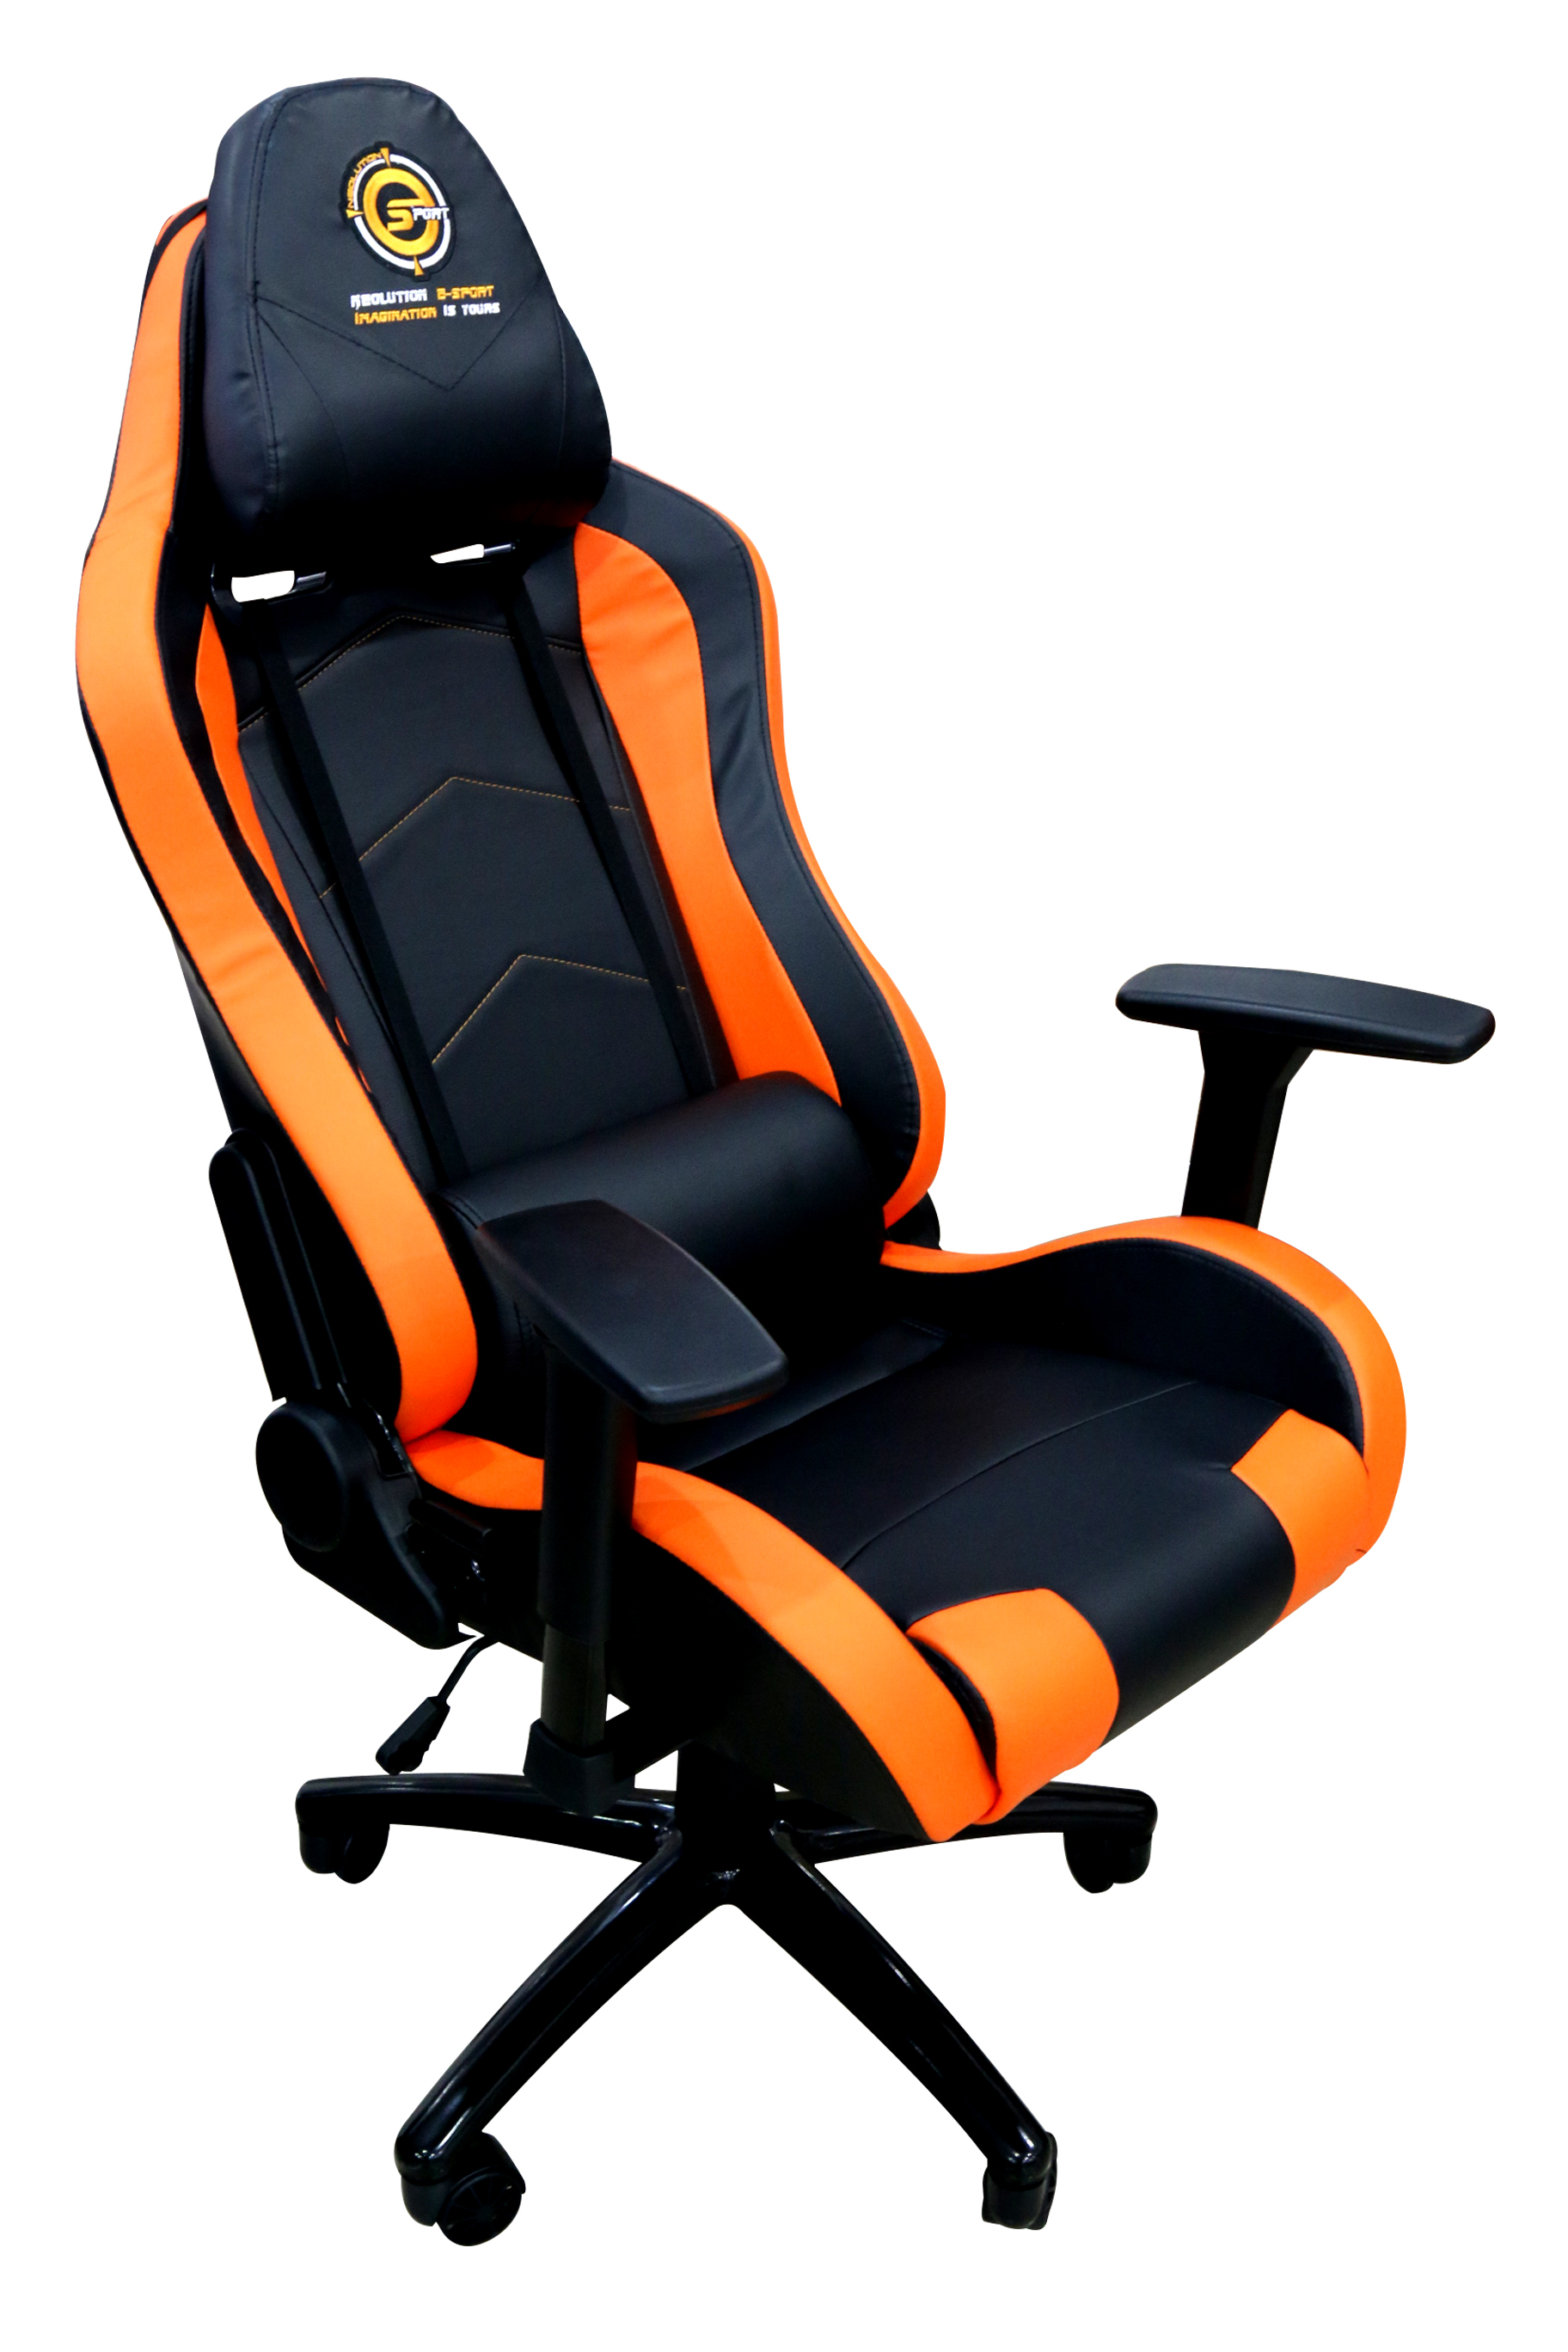 gaming chair - neolution e-sport